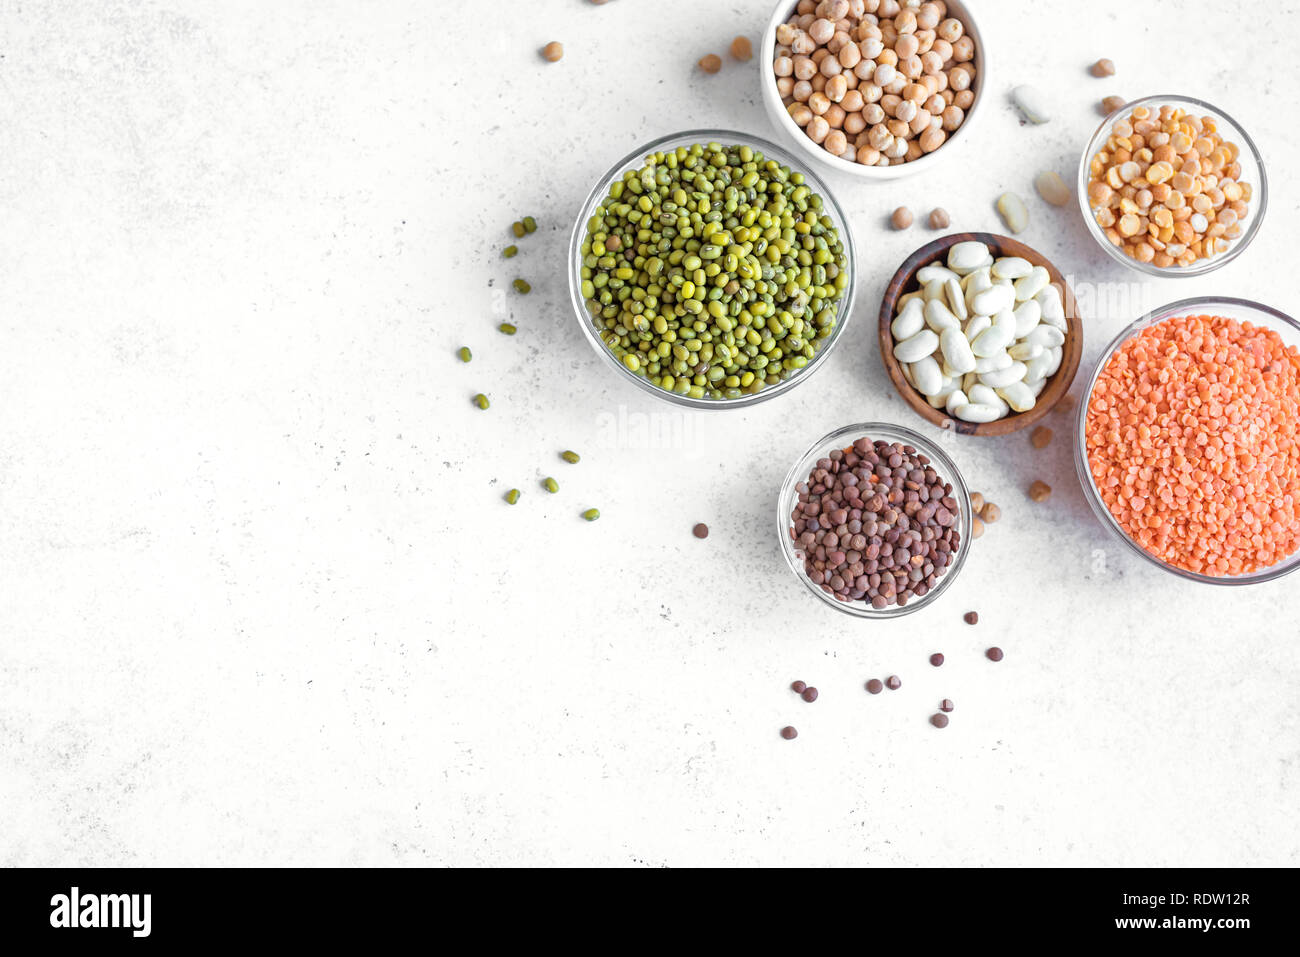 Healthy food, dieting, nutrition concept, vegan protein source. Assortment of colorful legumes in bowls, lentils,  kidney beans, chickpeas, mung, peas - Stock Image